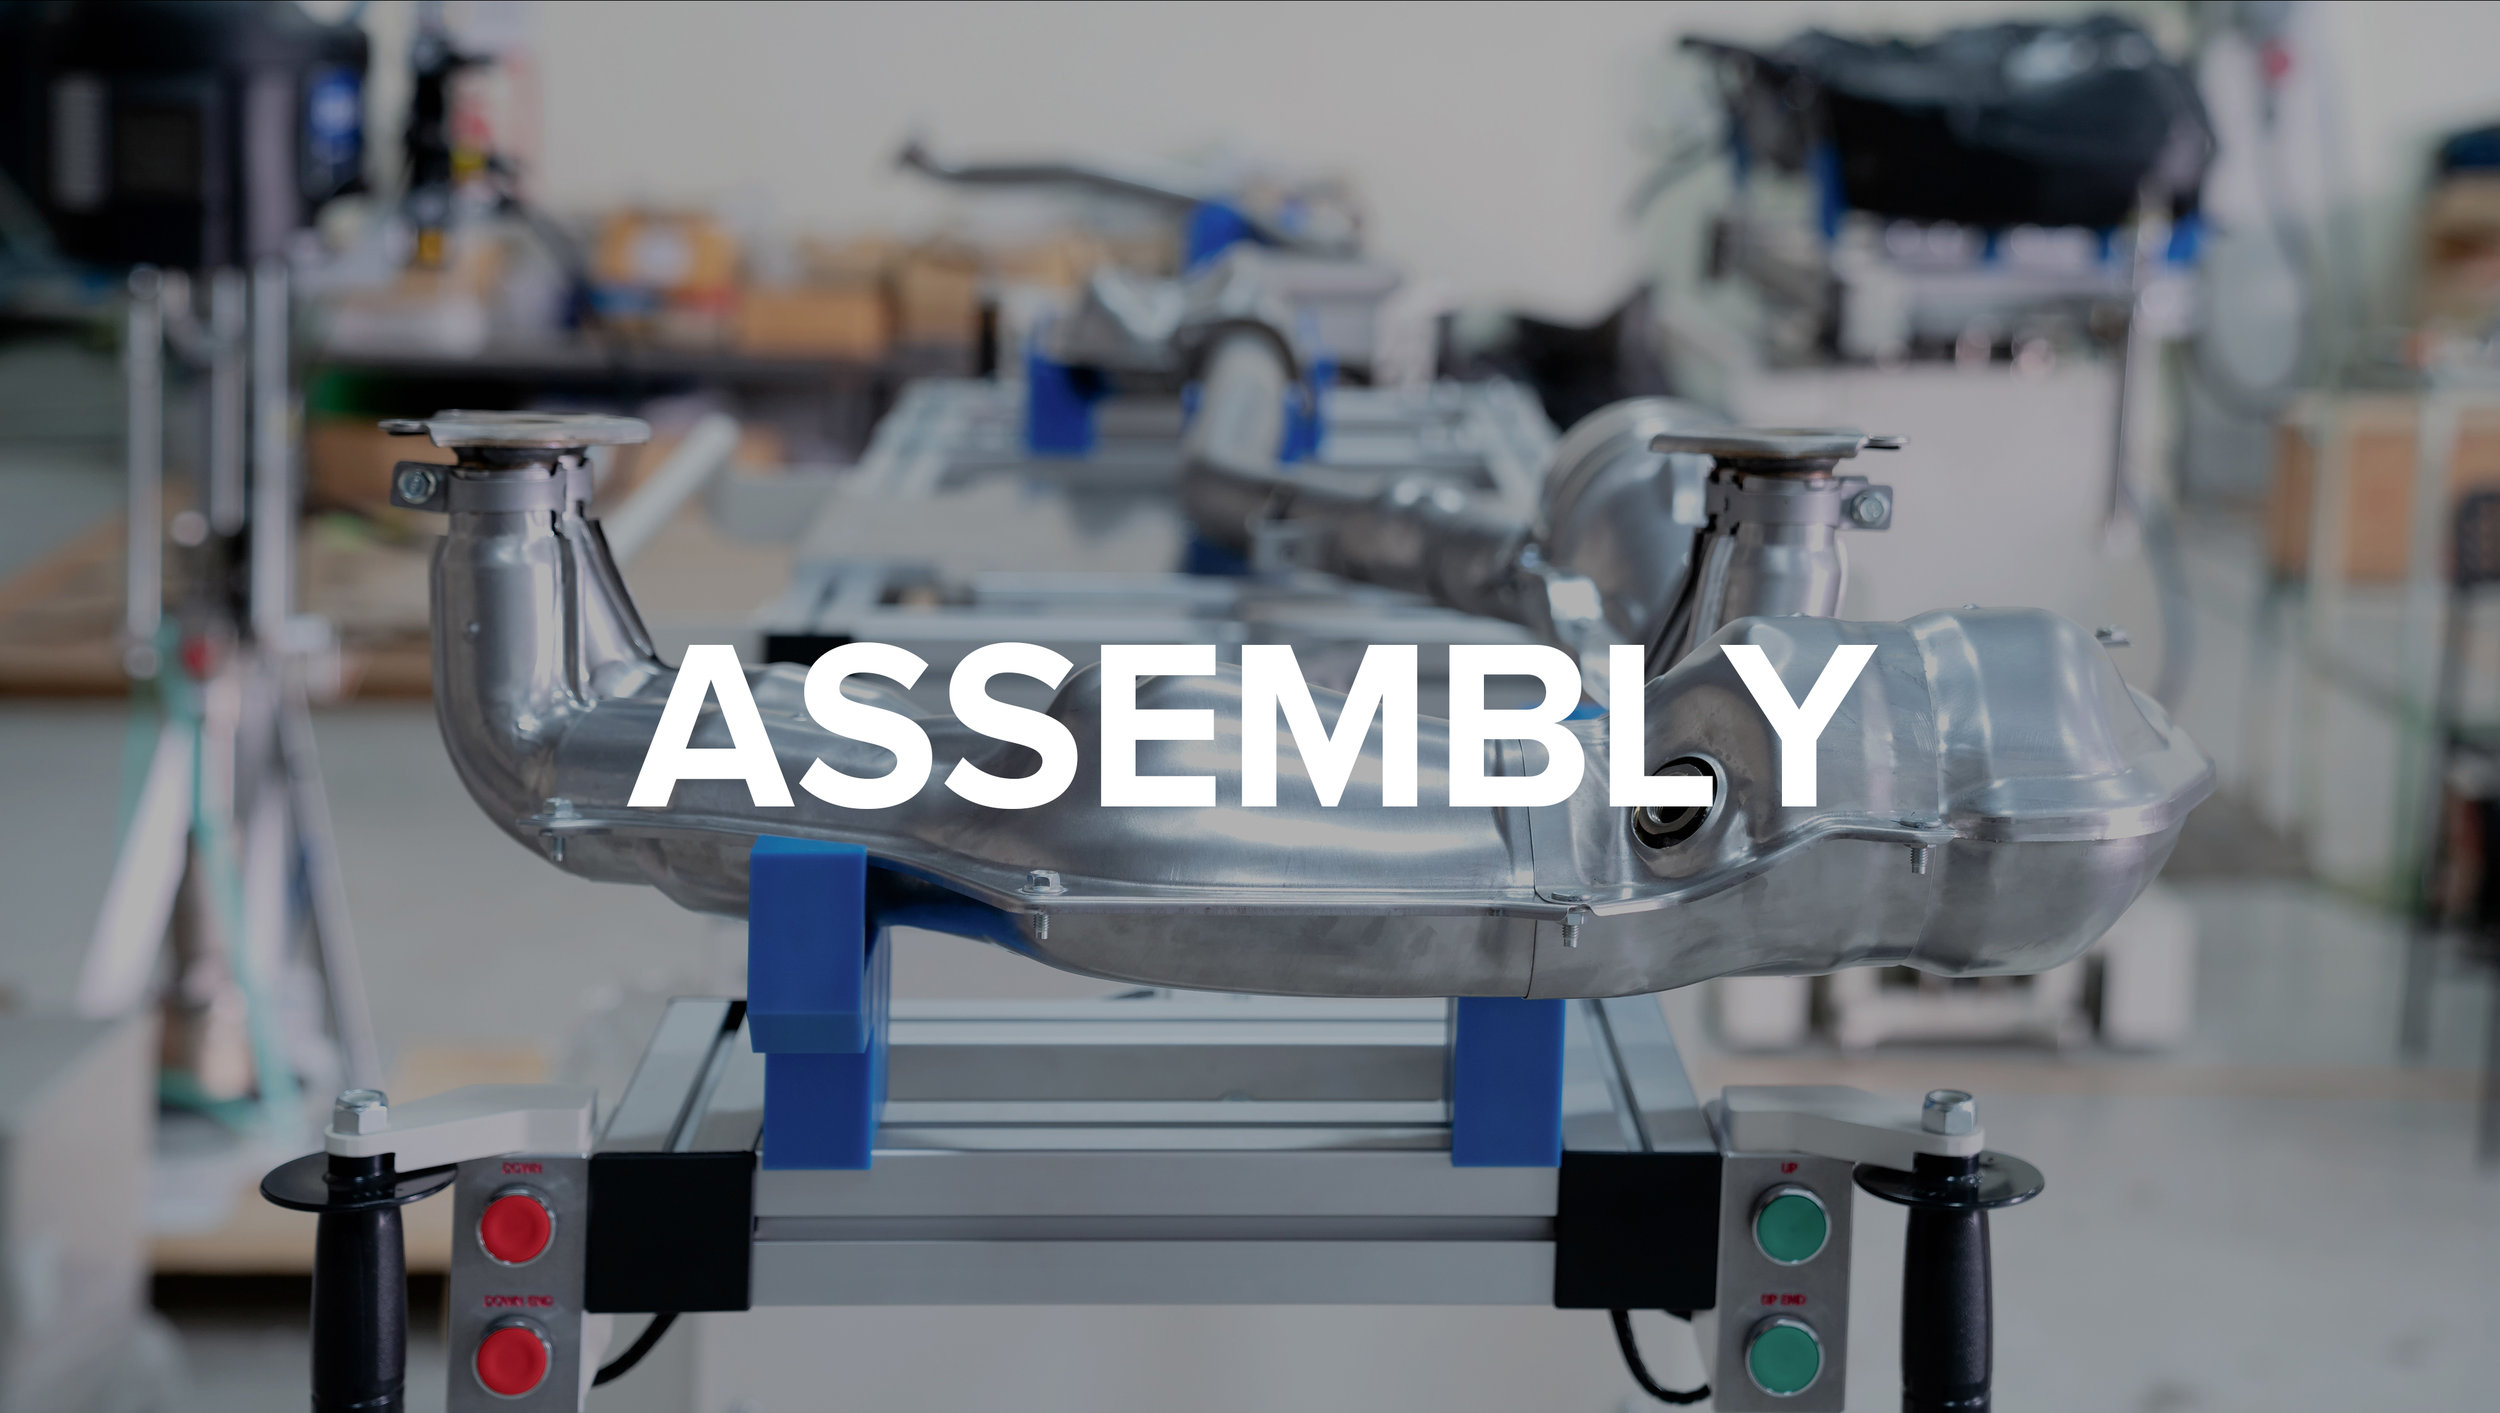 We deliver world-class assembly services for companies whose capacity calls for it. Value-driven and cost-effective, our assembly solutions help keep businesses moving.